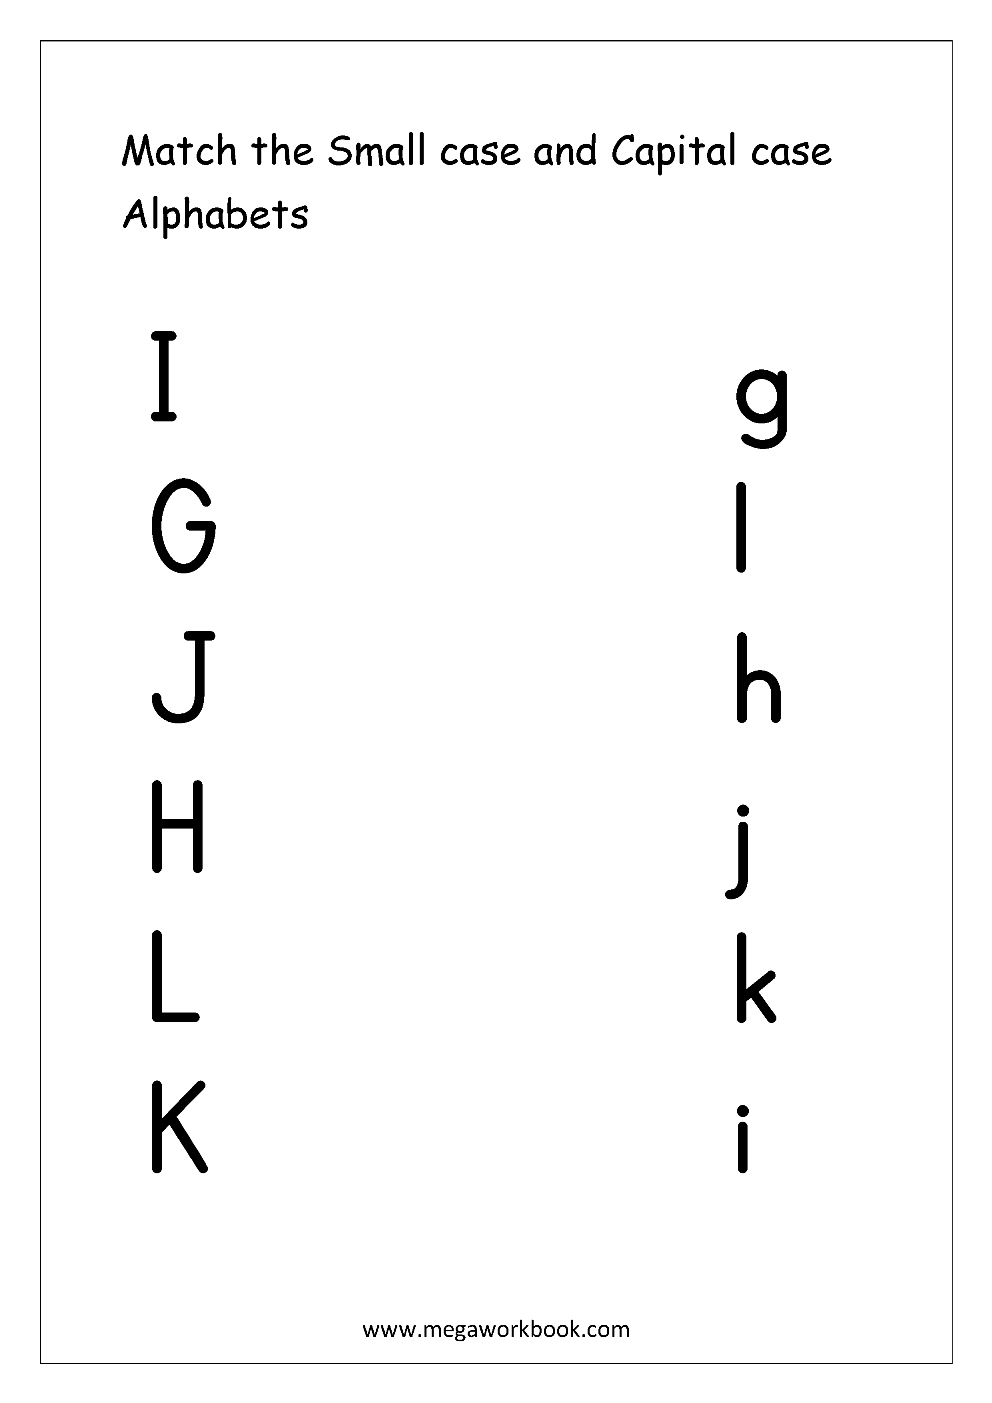 Workbooks matching letters worksheets : Free English Worksheets - Alphabet Matching - MegaWorkbook